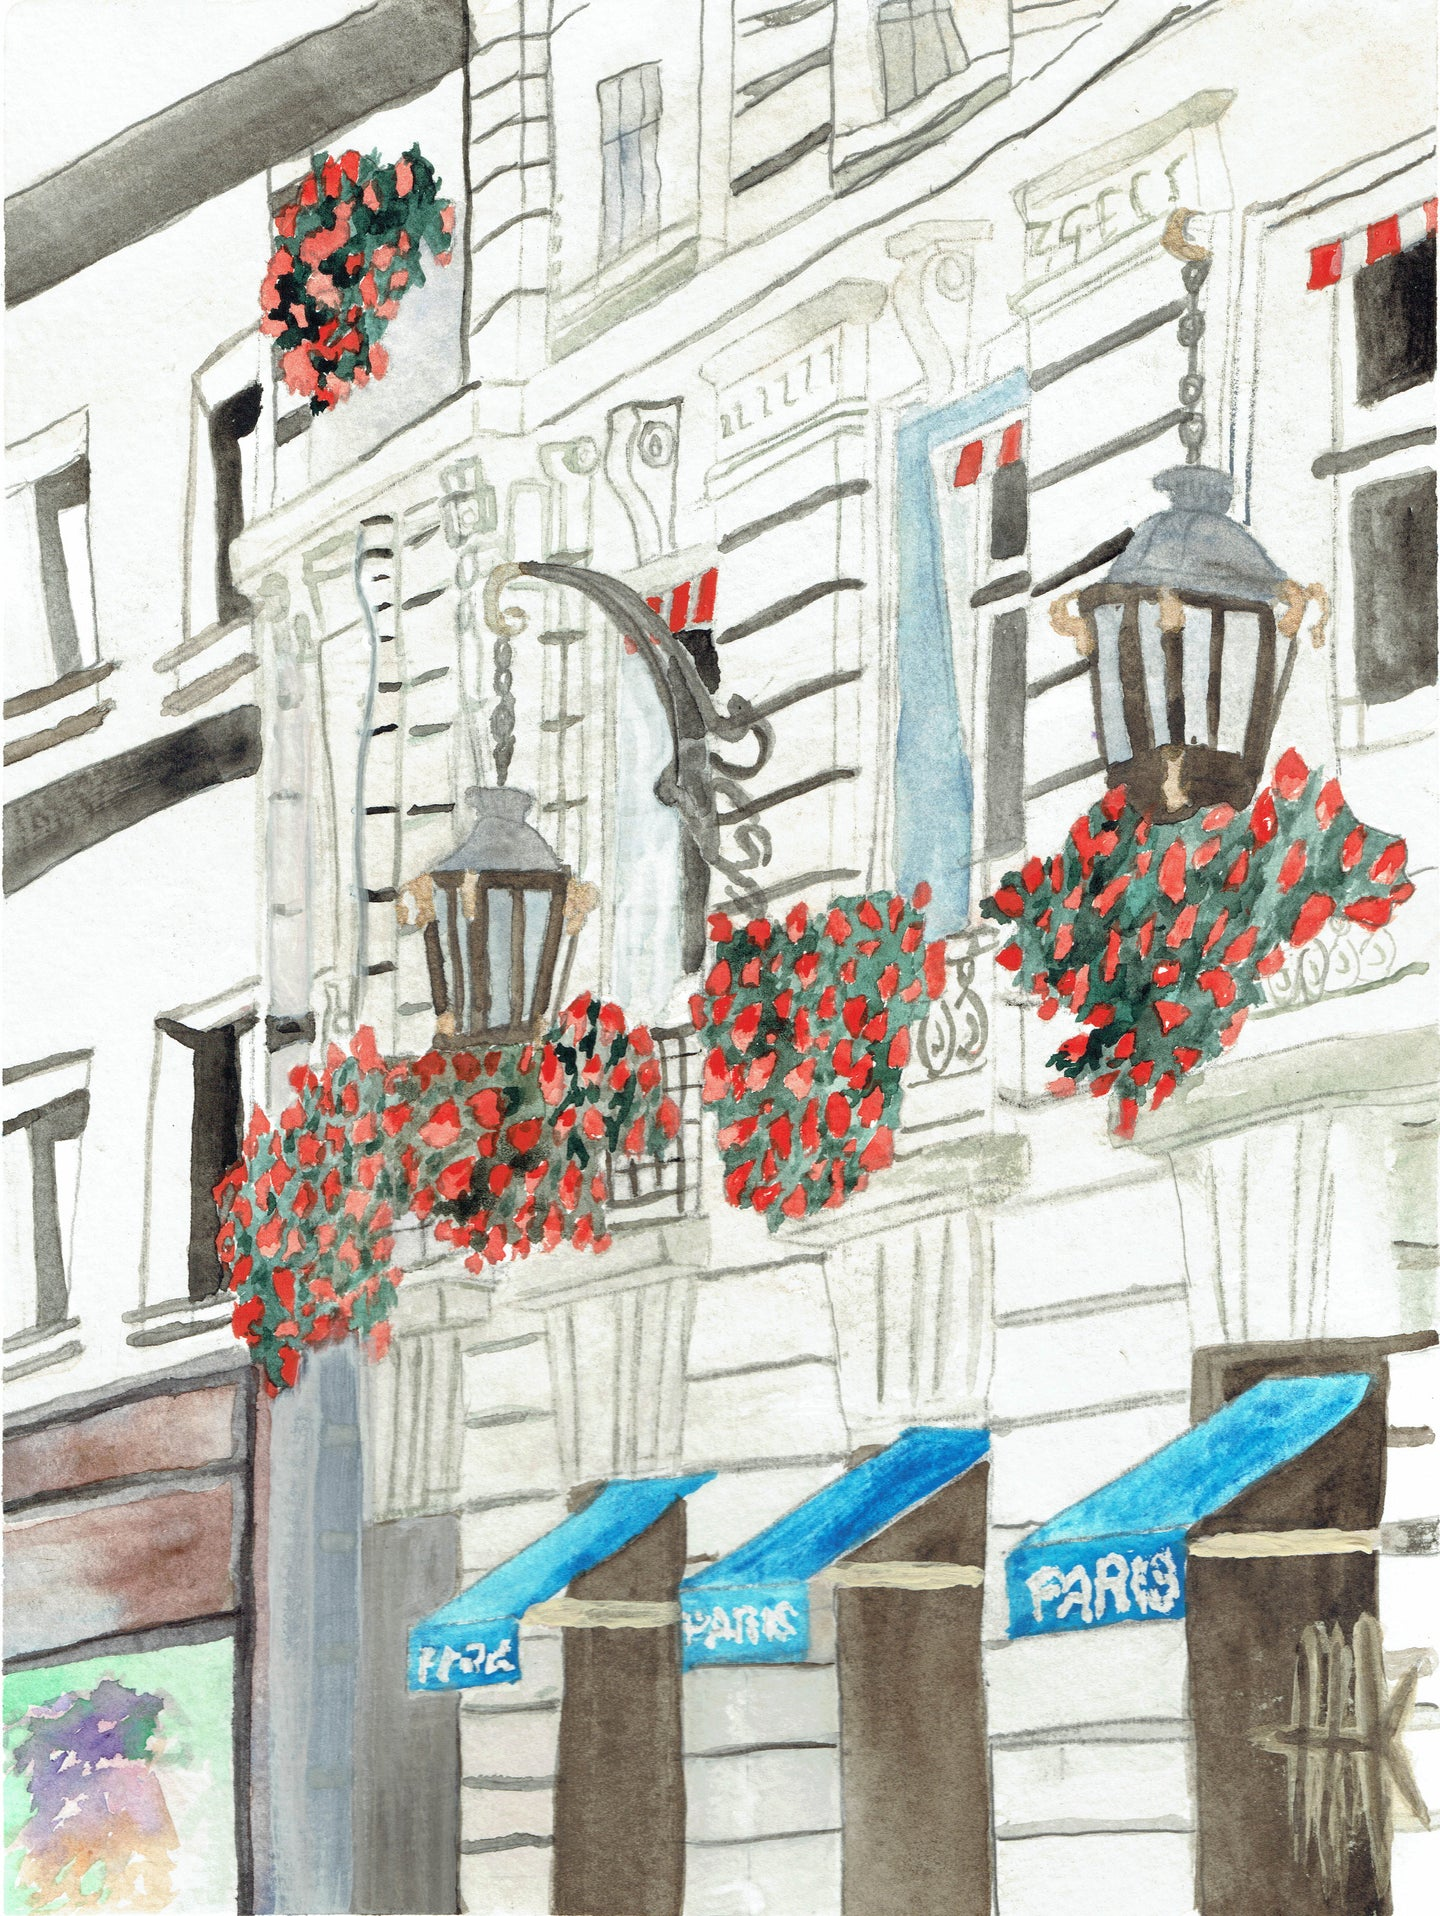 HANGING FLOWERS OF PARIS - CARDS